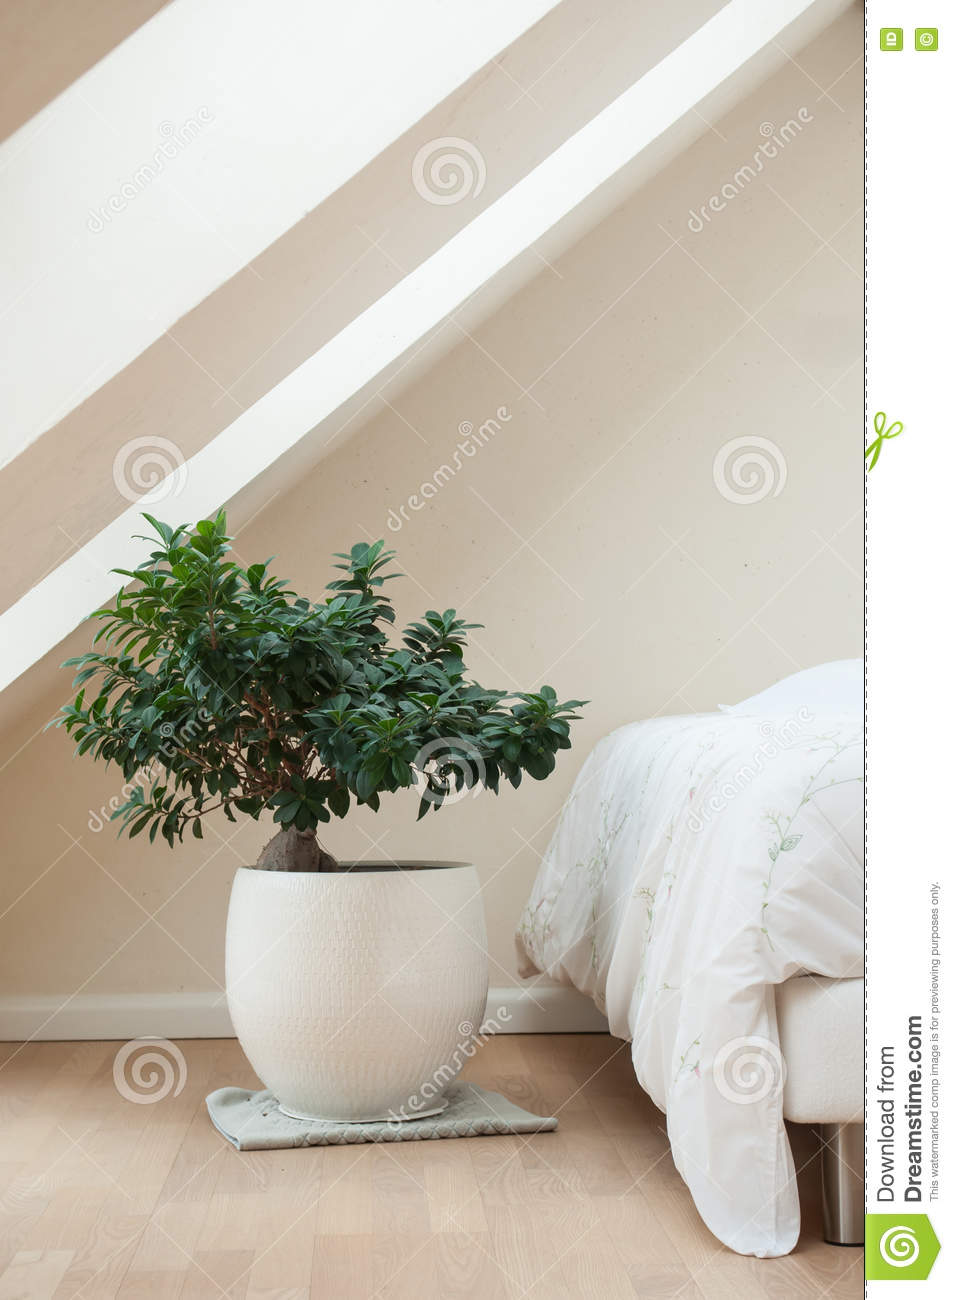 Camera Da Letto Con I Bonsai Decorativi Di Zen Immagine Stock ...